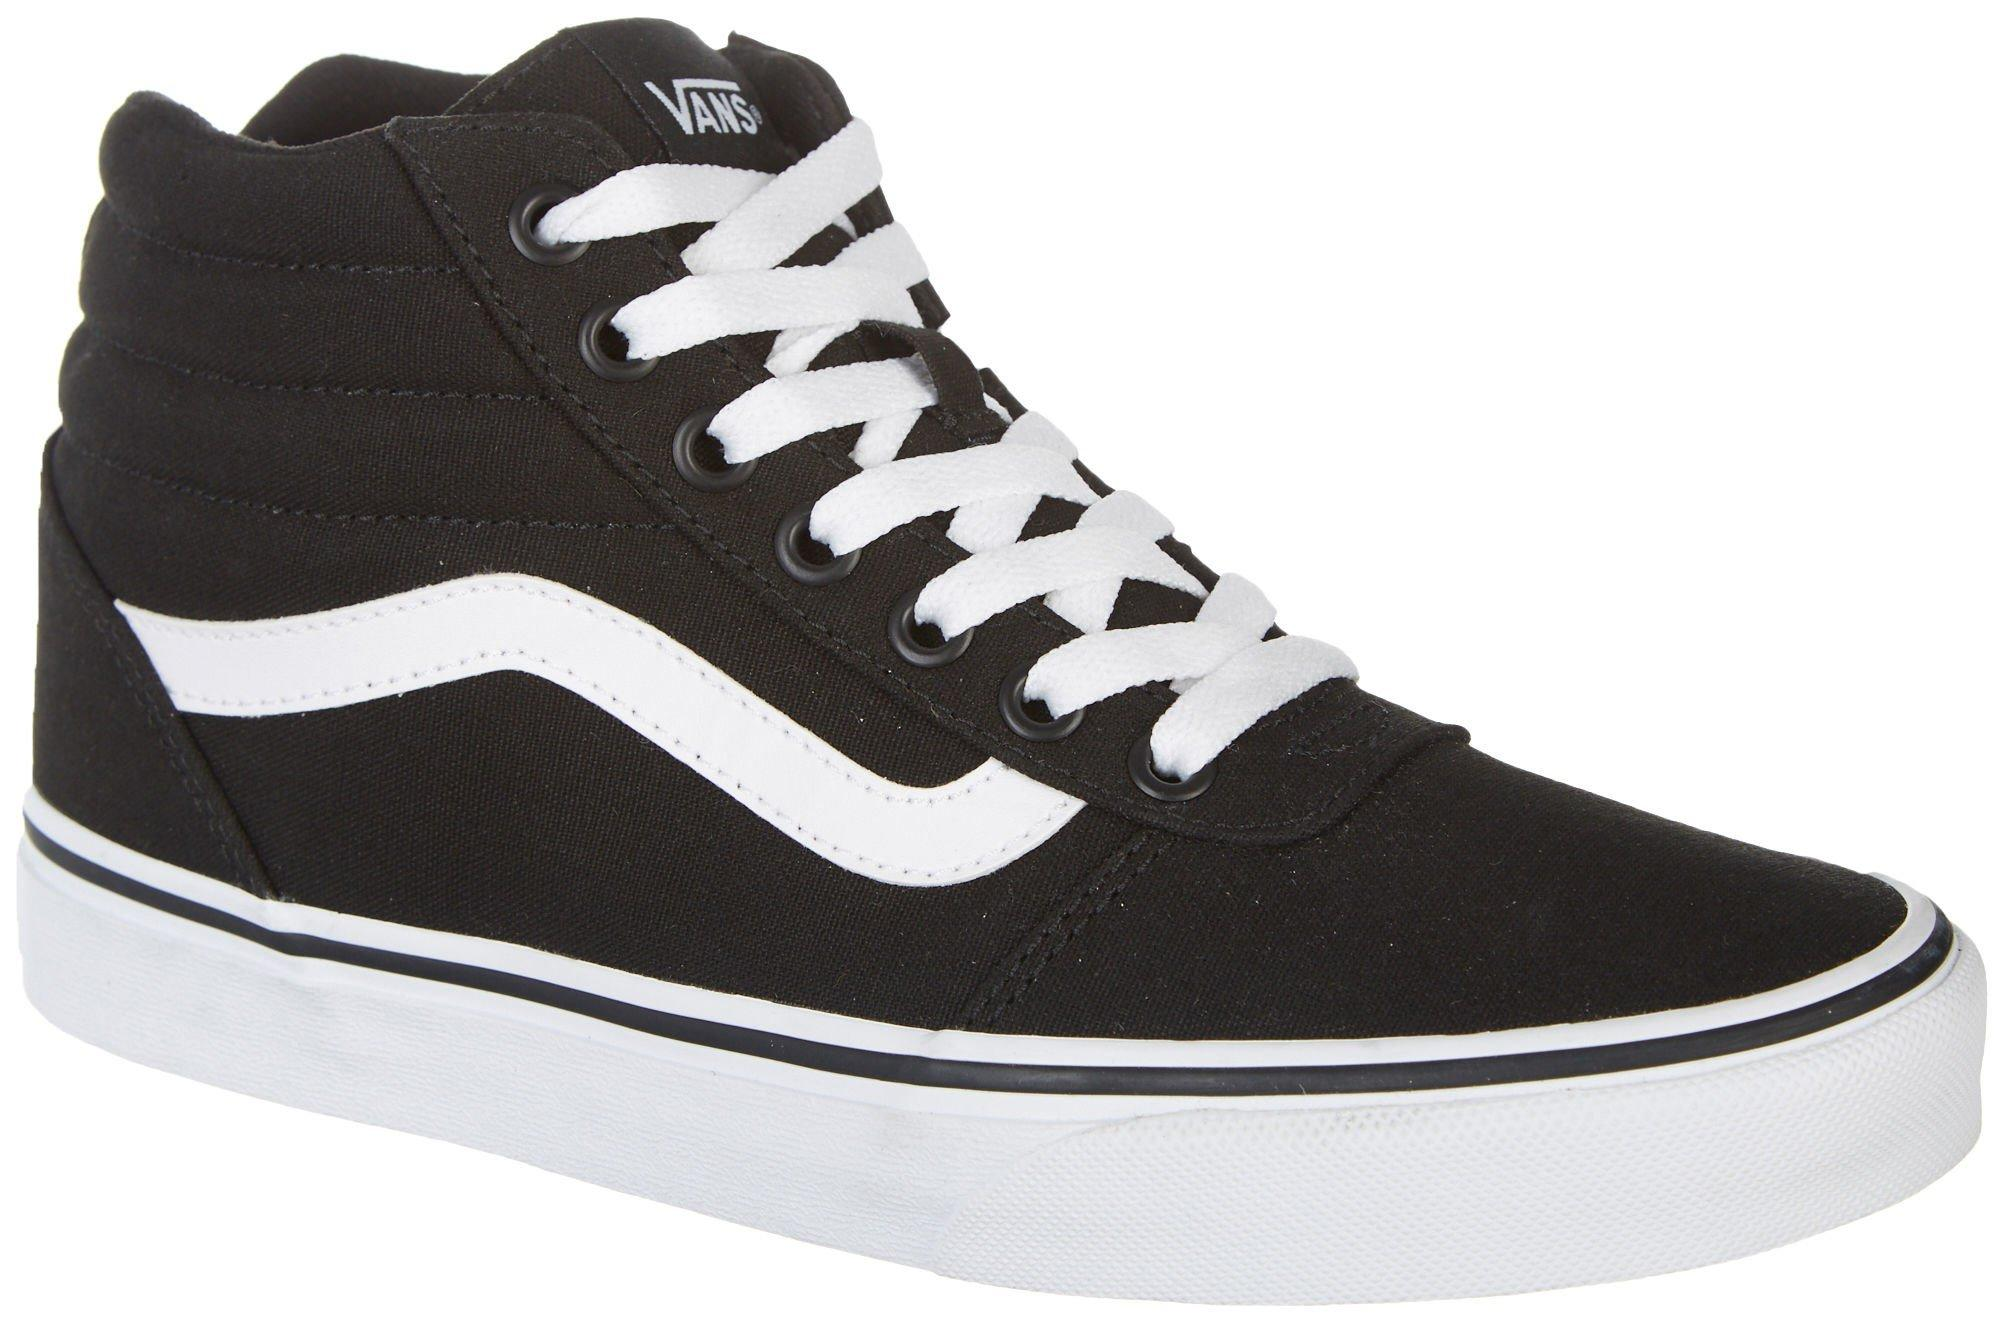 best website 164dd 47a33 Shoes Cushioned Florida Cushioned Björnar Shoes Florida Vans Björnar Vans  WfwvgSnYfq